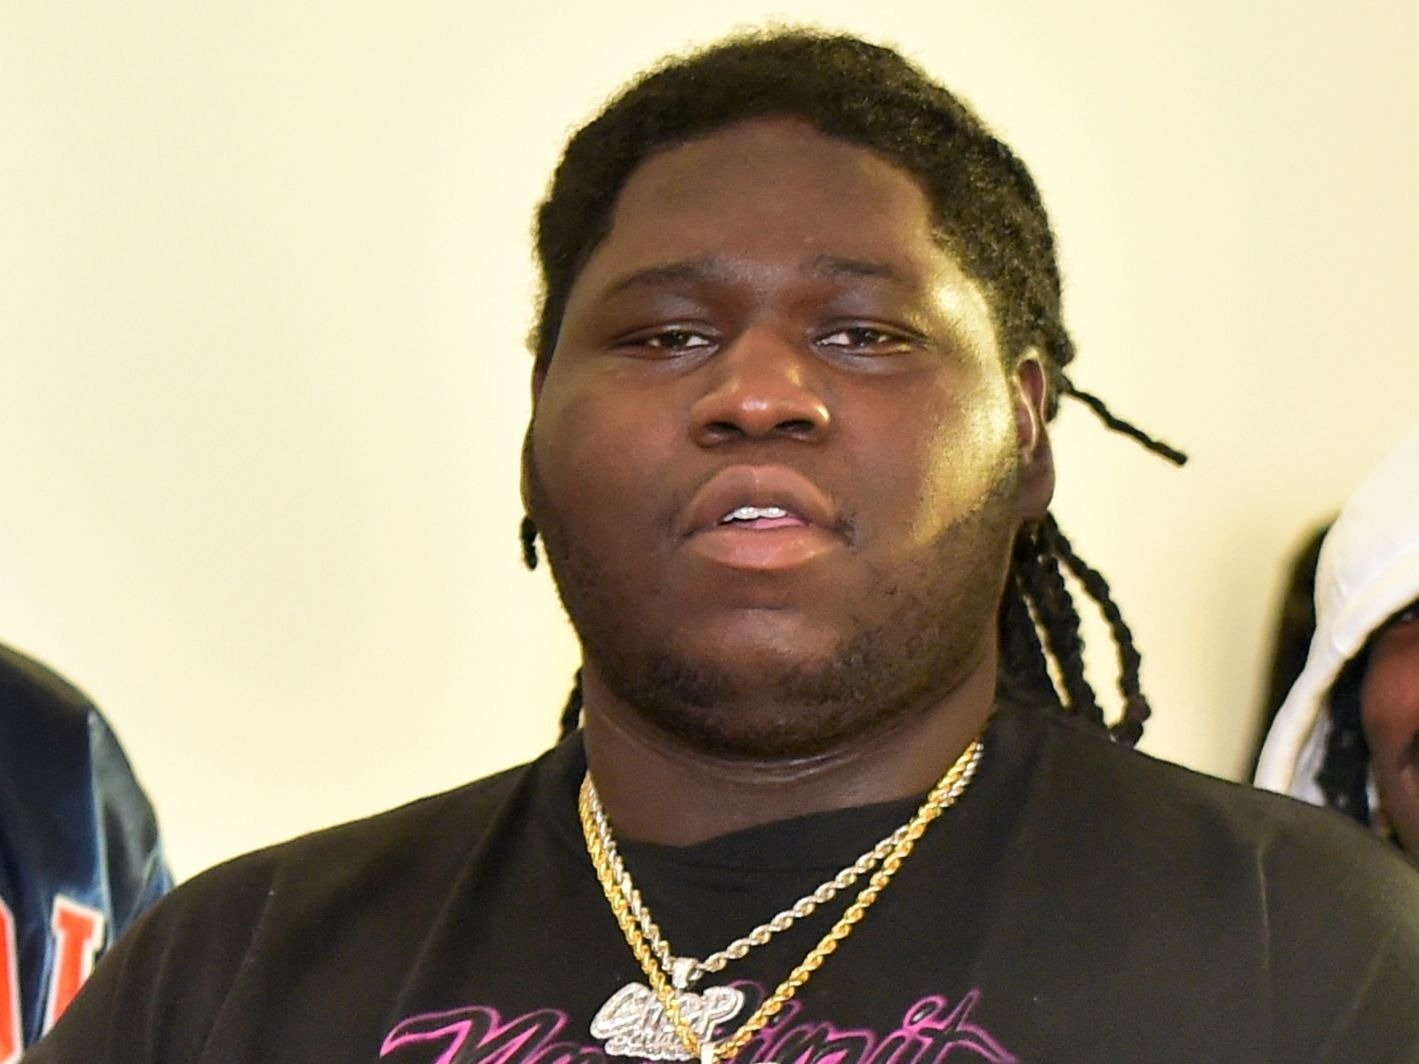 Young Chop Given 24 Hours To Leave Atlanta — Taunts His Opps Instead